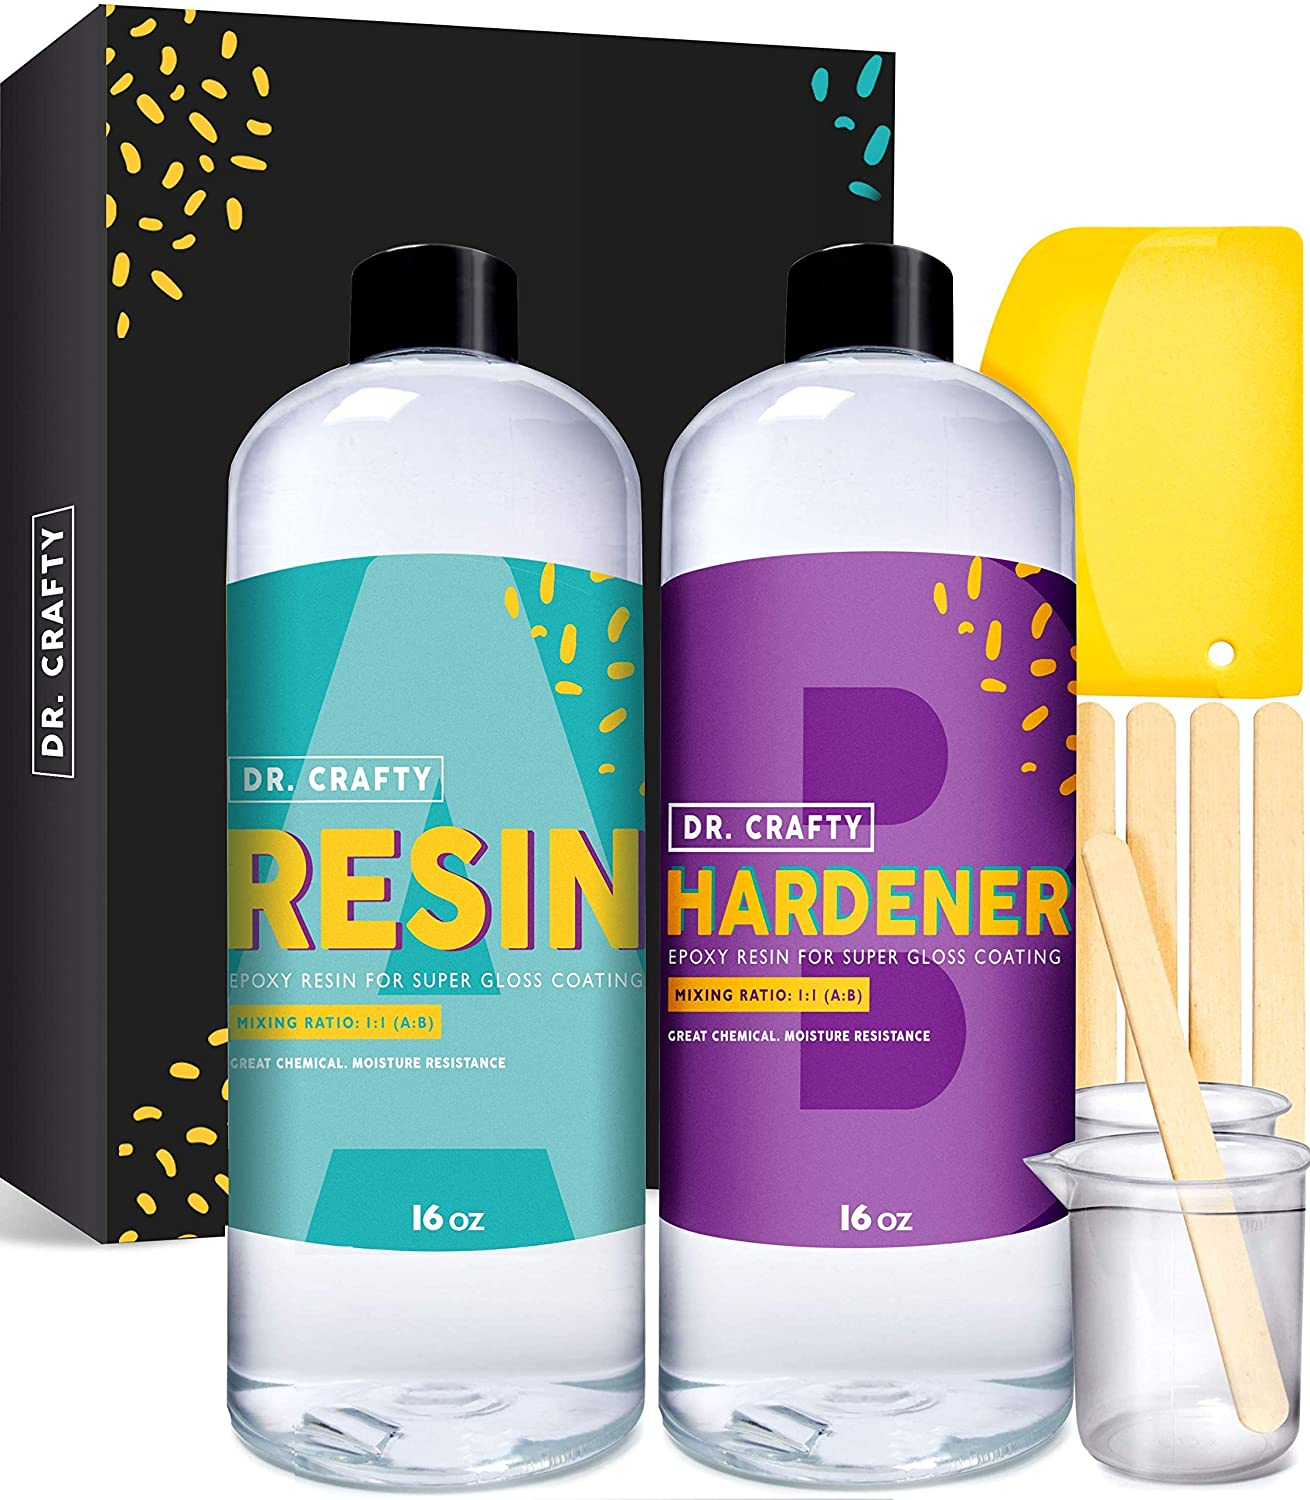 Dr. Crafty Full Clear Epoxy Resin Kit